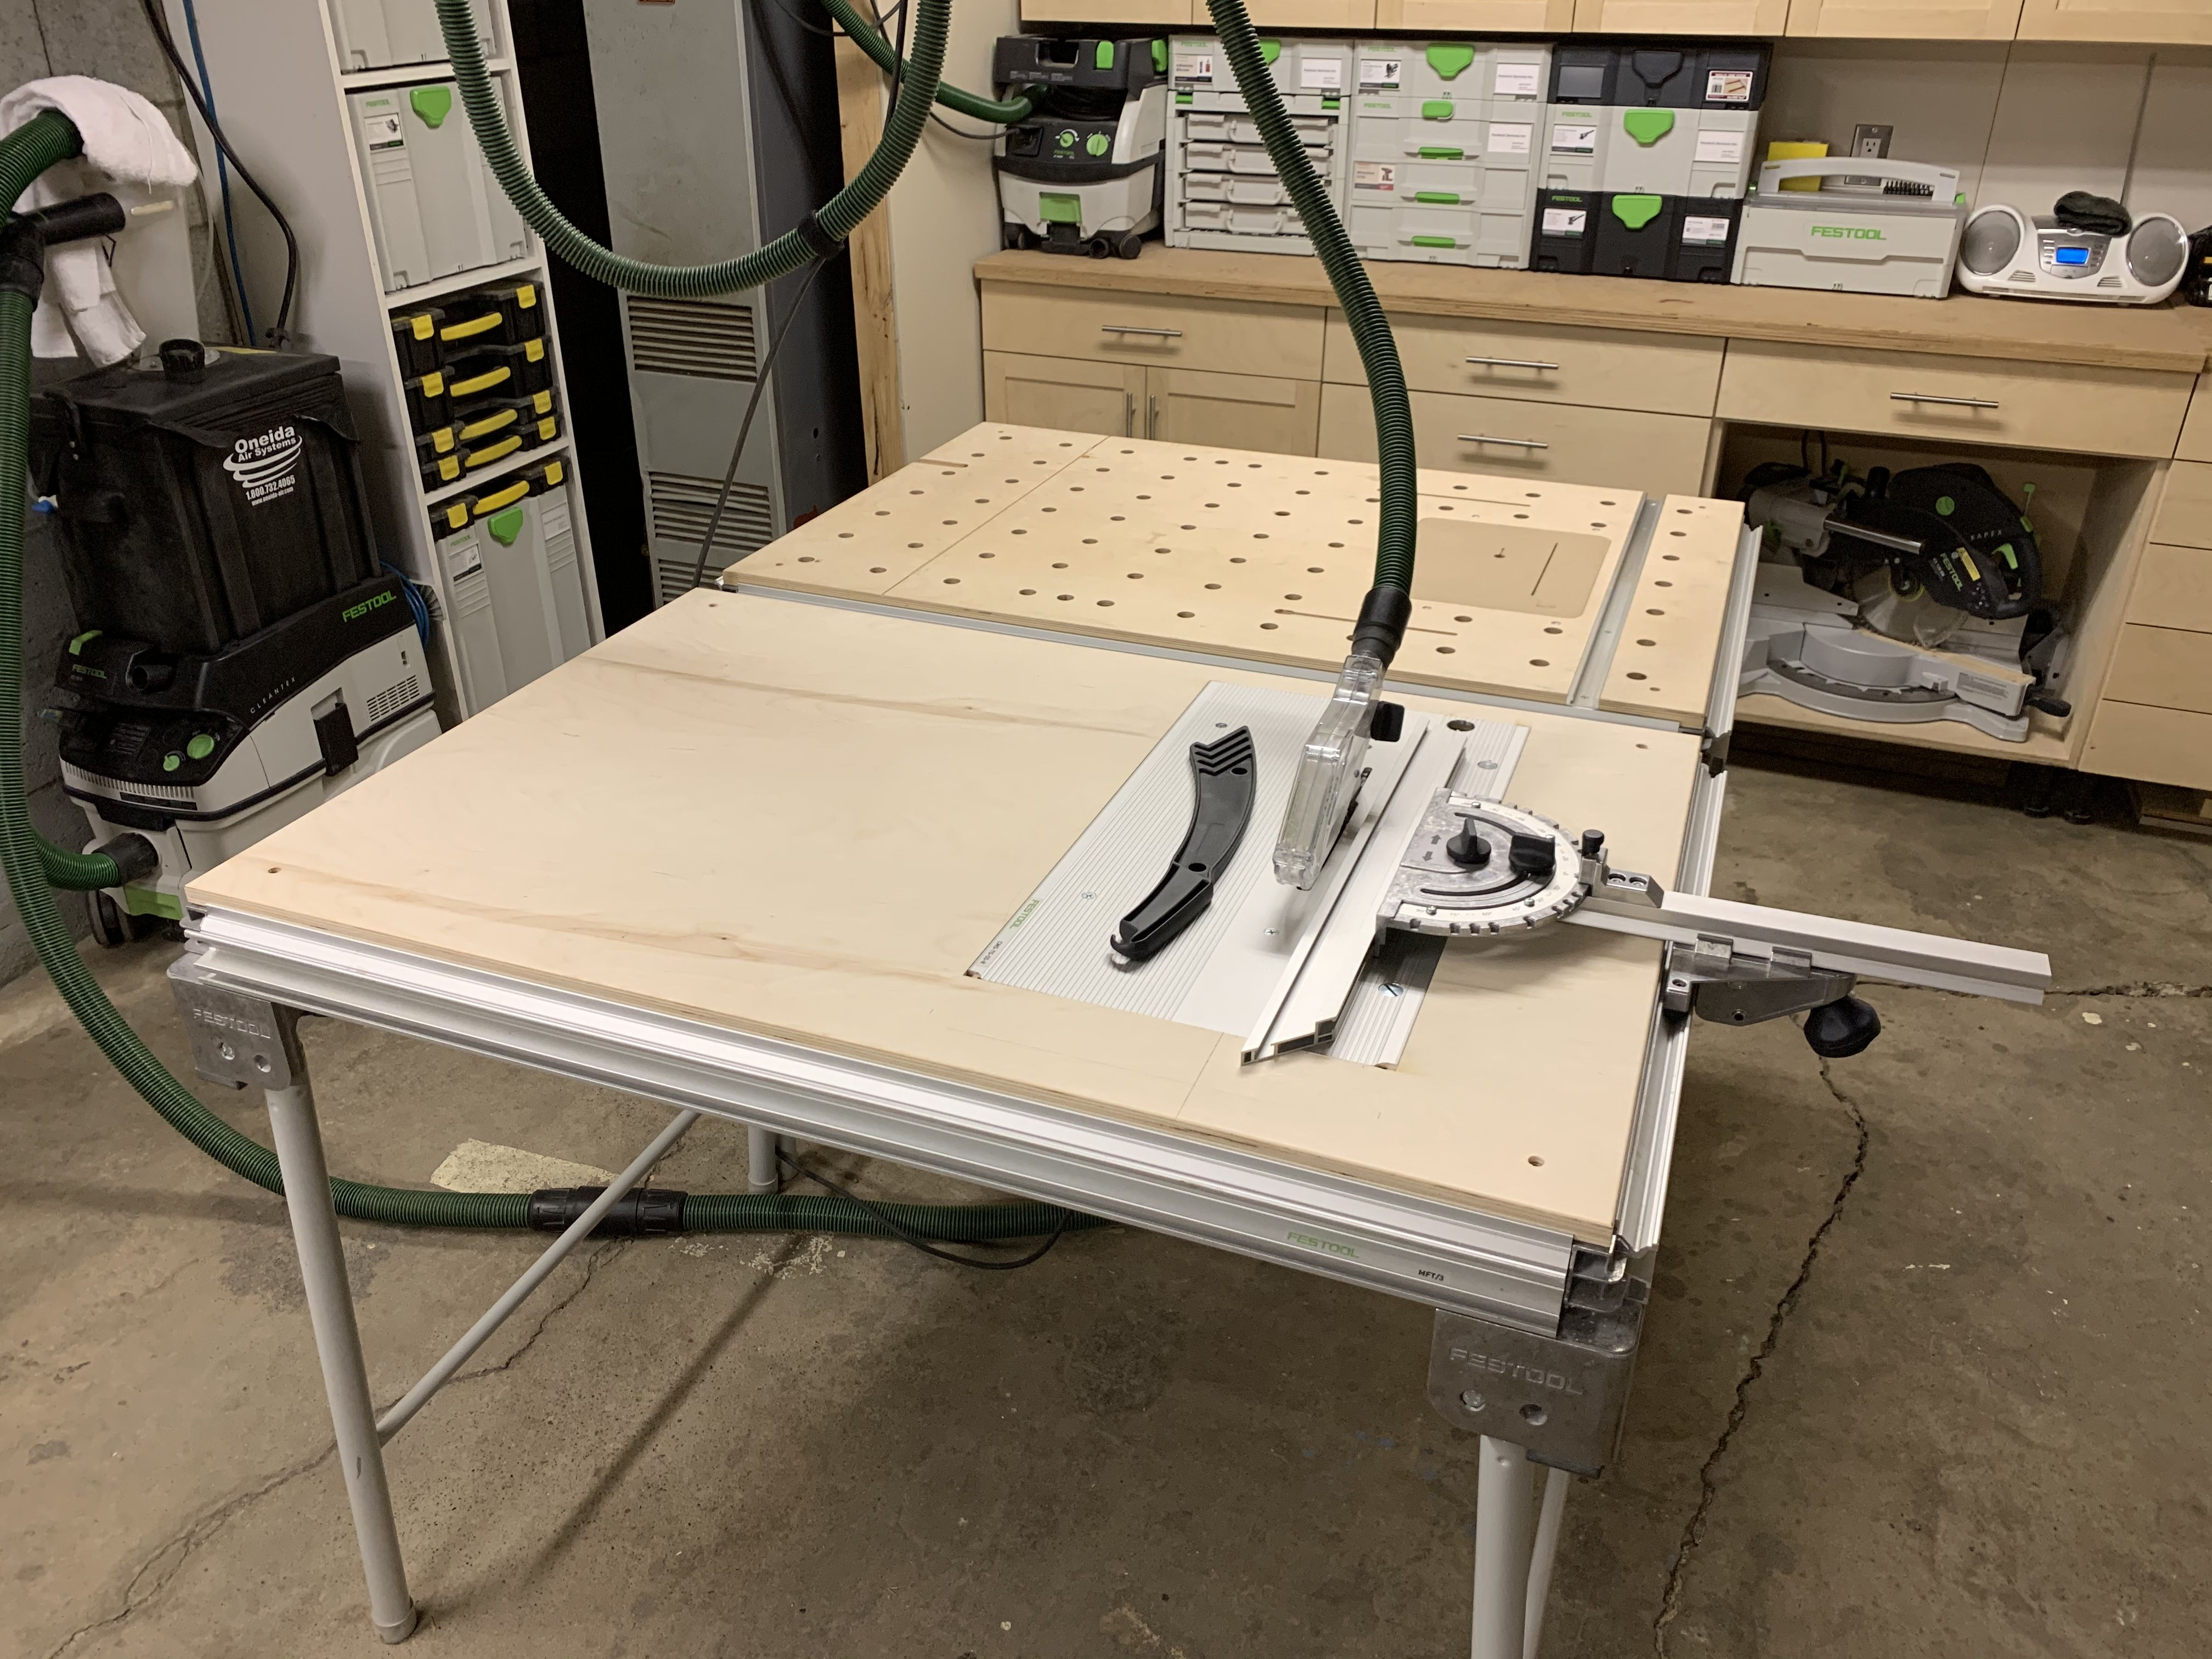 DIY MFT top with CMS insert for TS55 saw. Festool